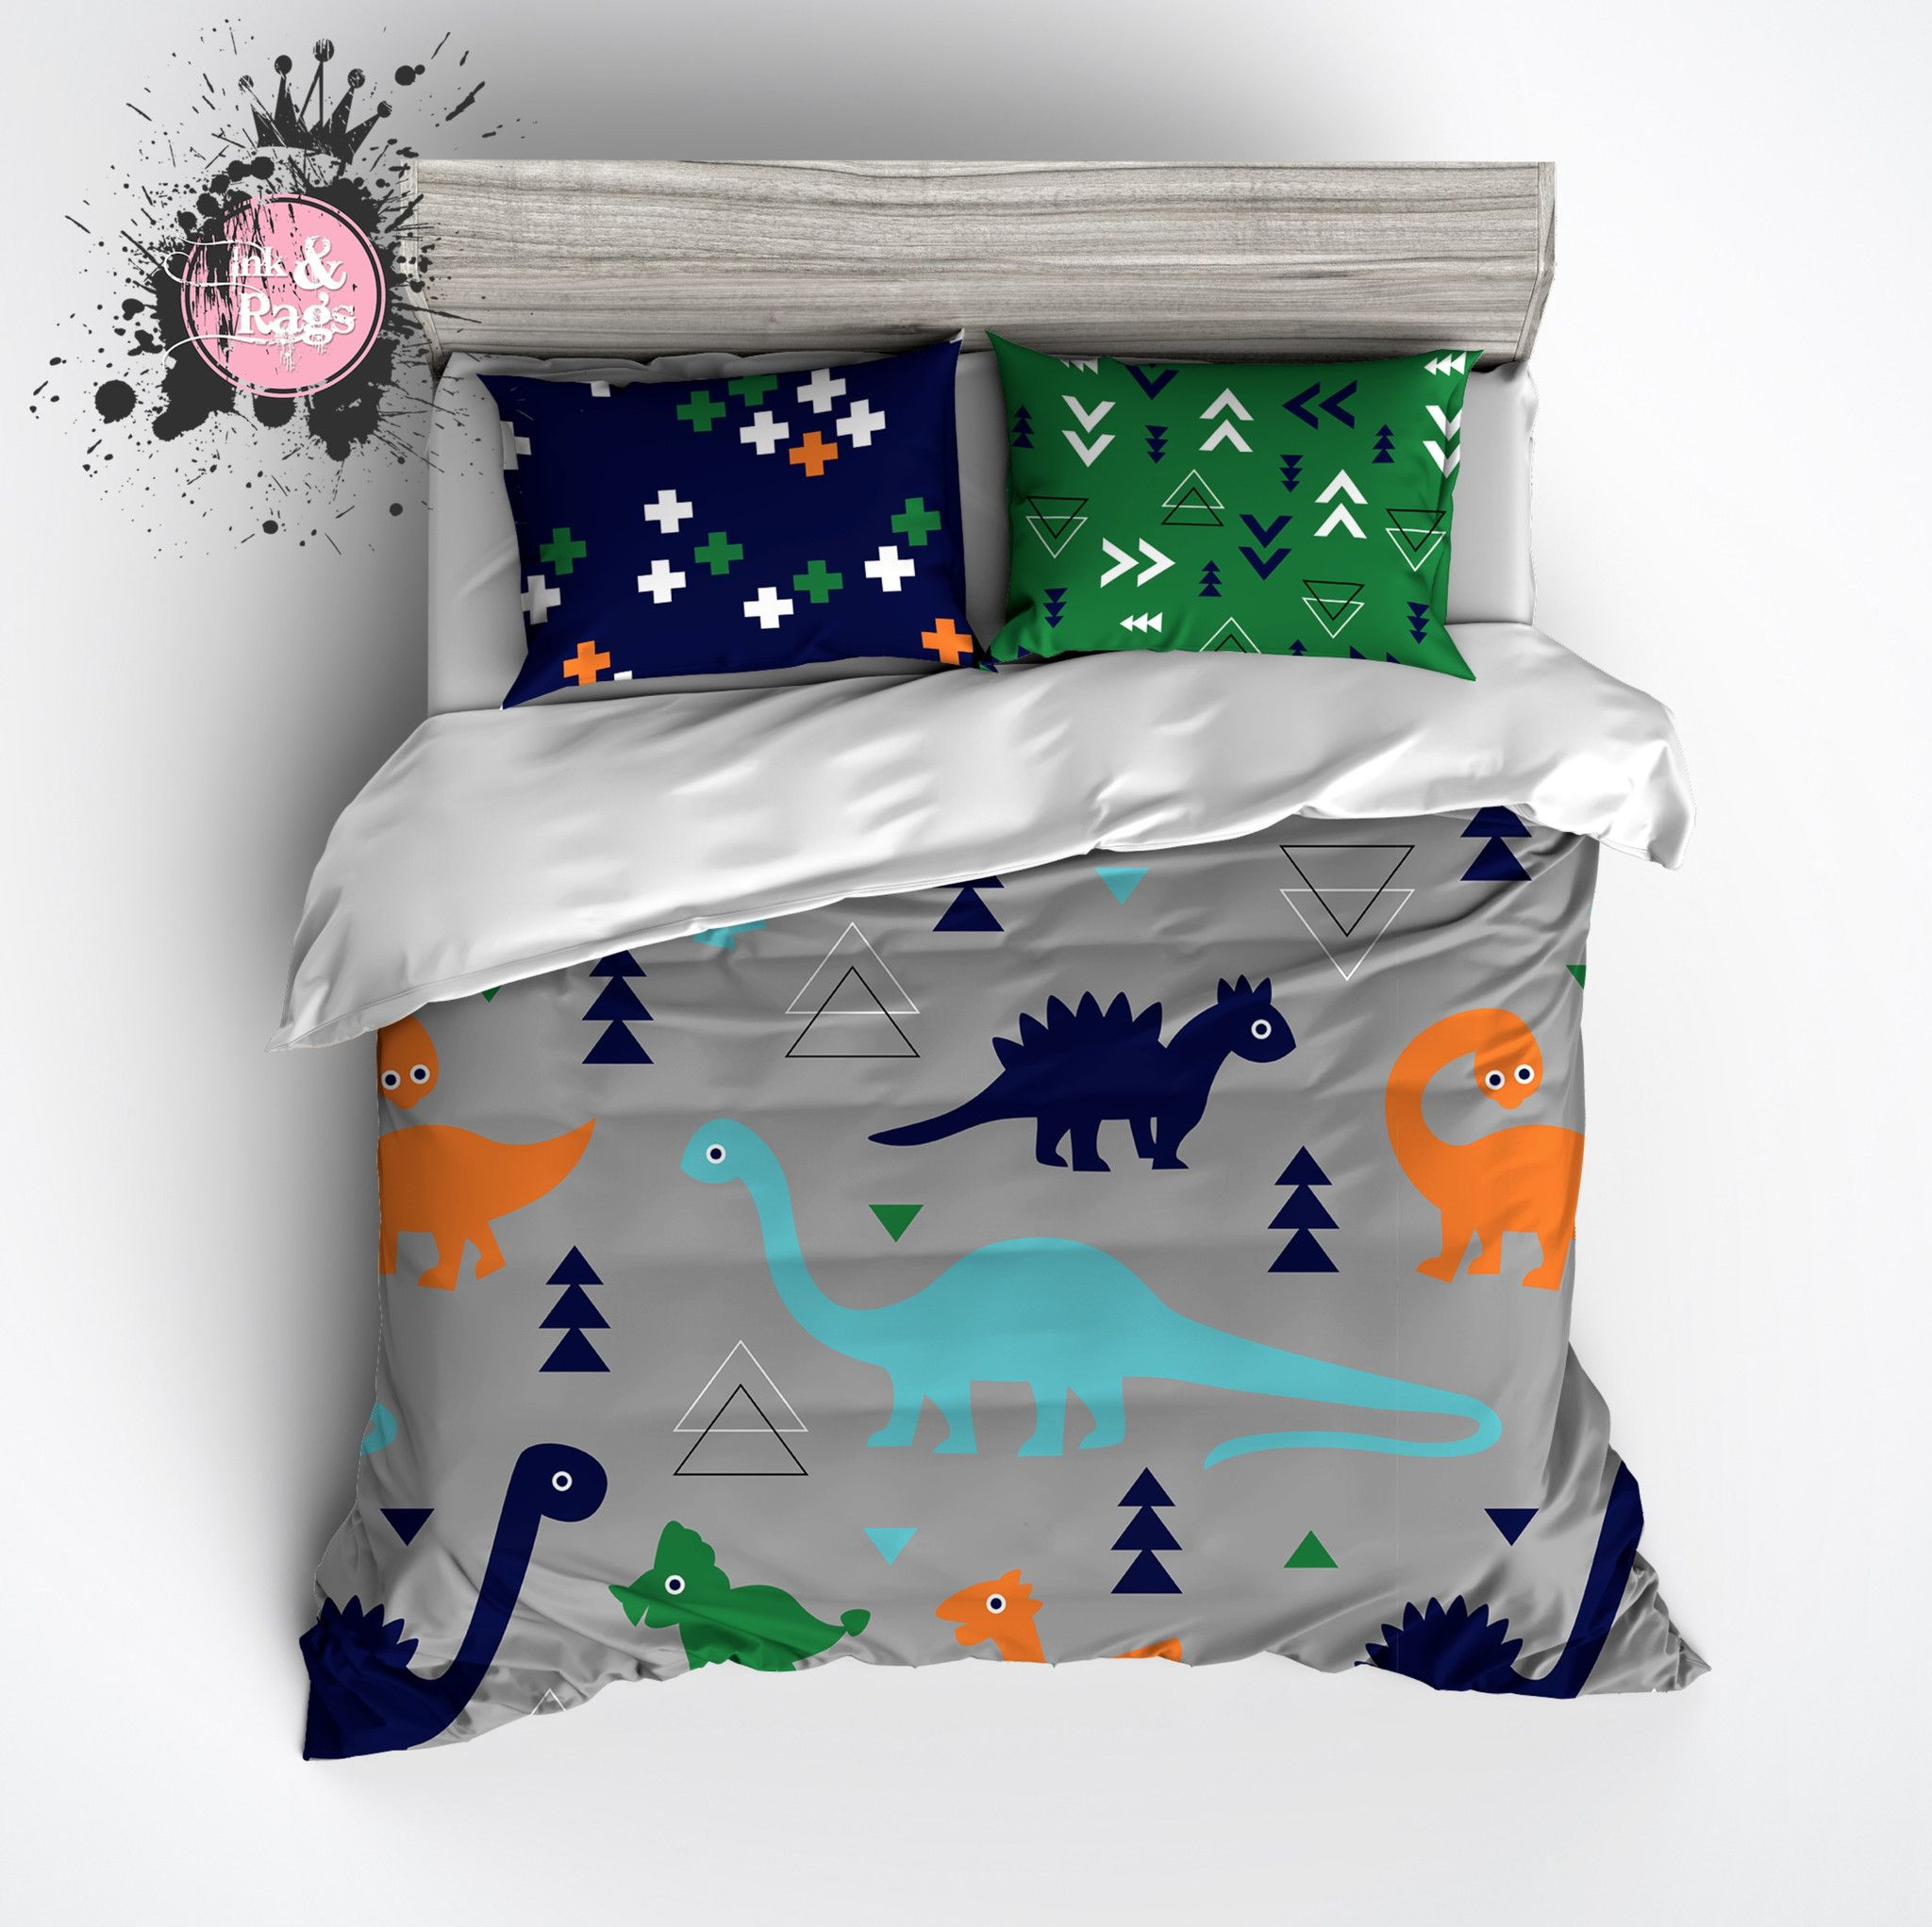 Pcs peter pan bedding set duvet cover fitted sheet pillow case worl - Bedding